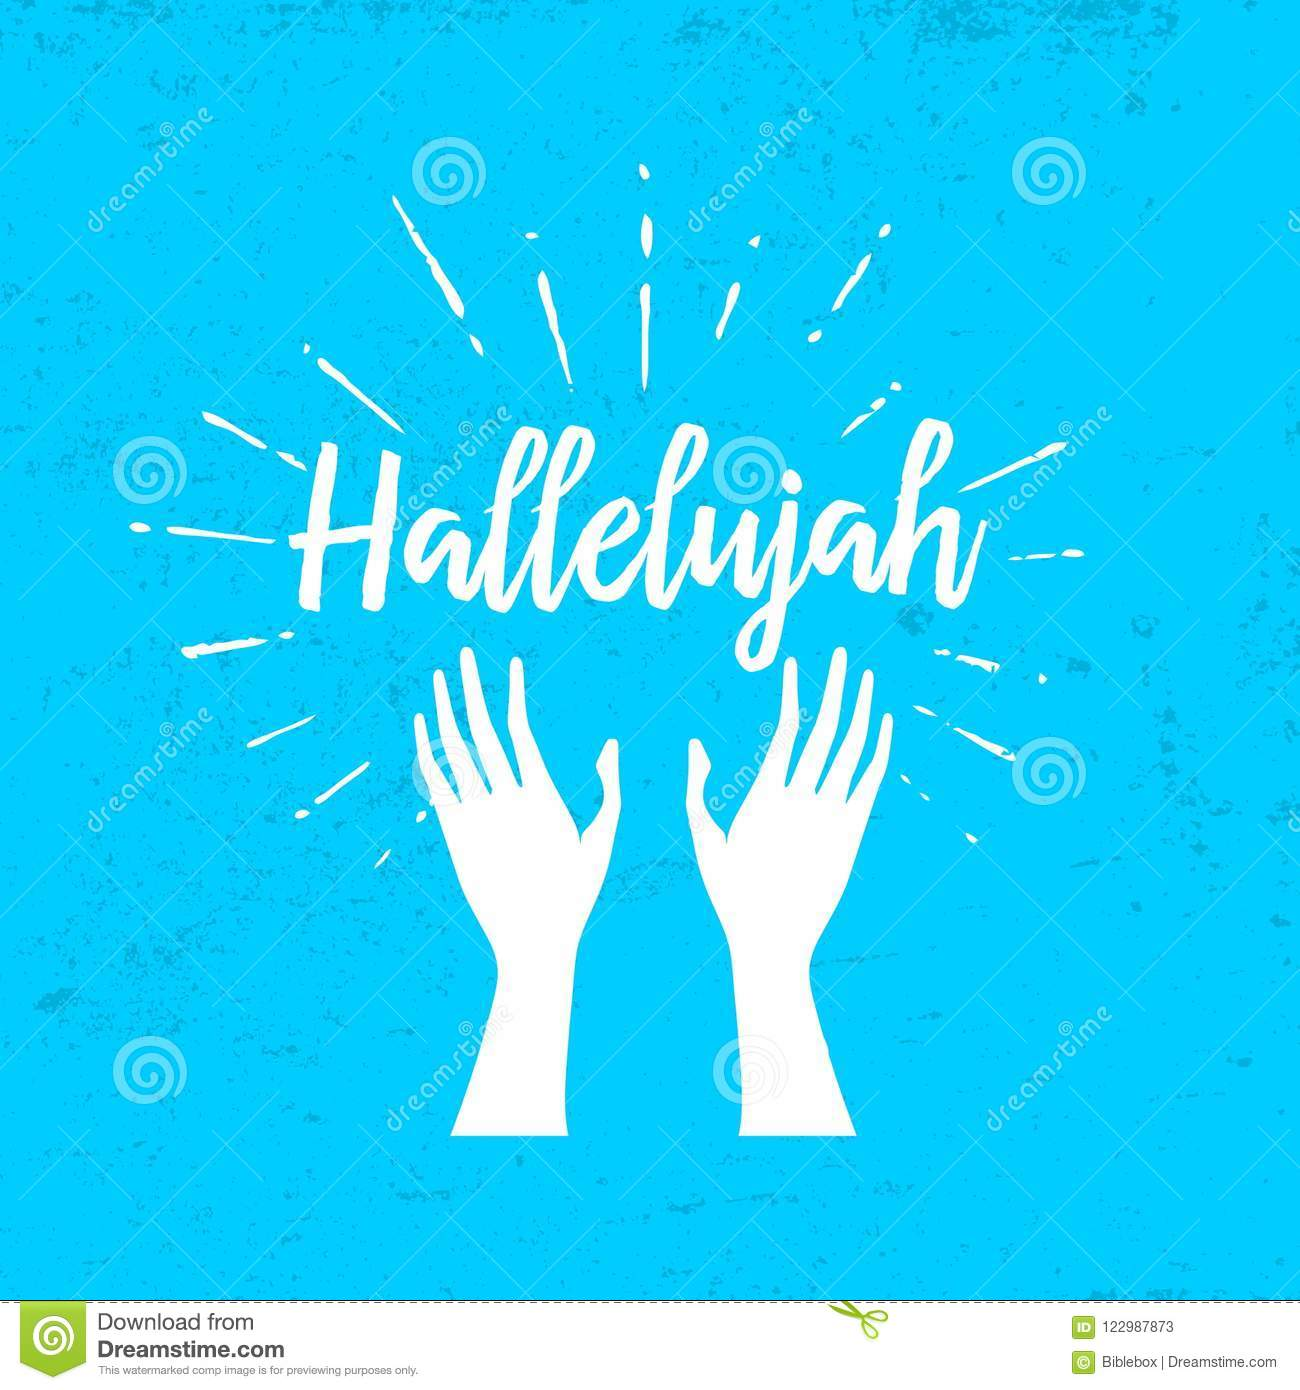 hallelujah and raised hands stock vector illustration of goliath